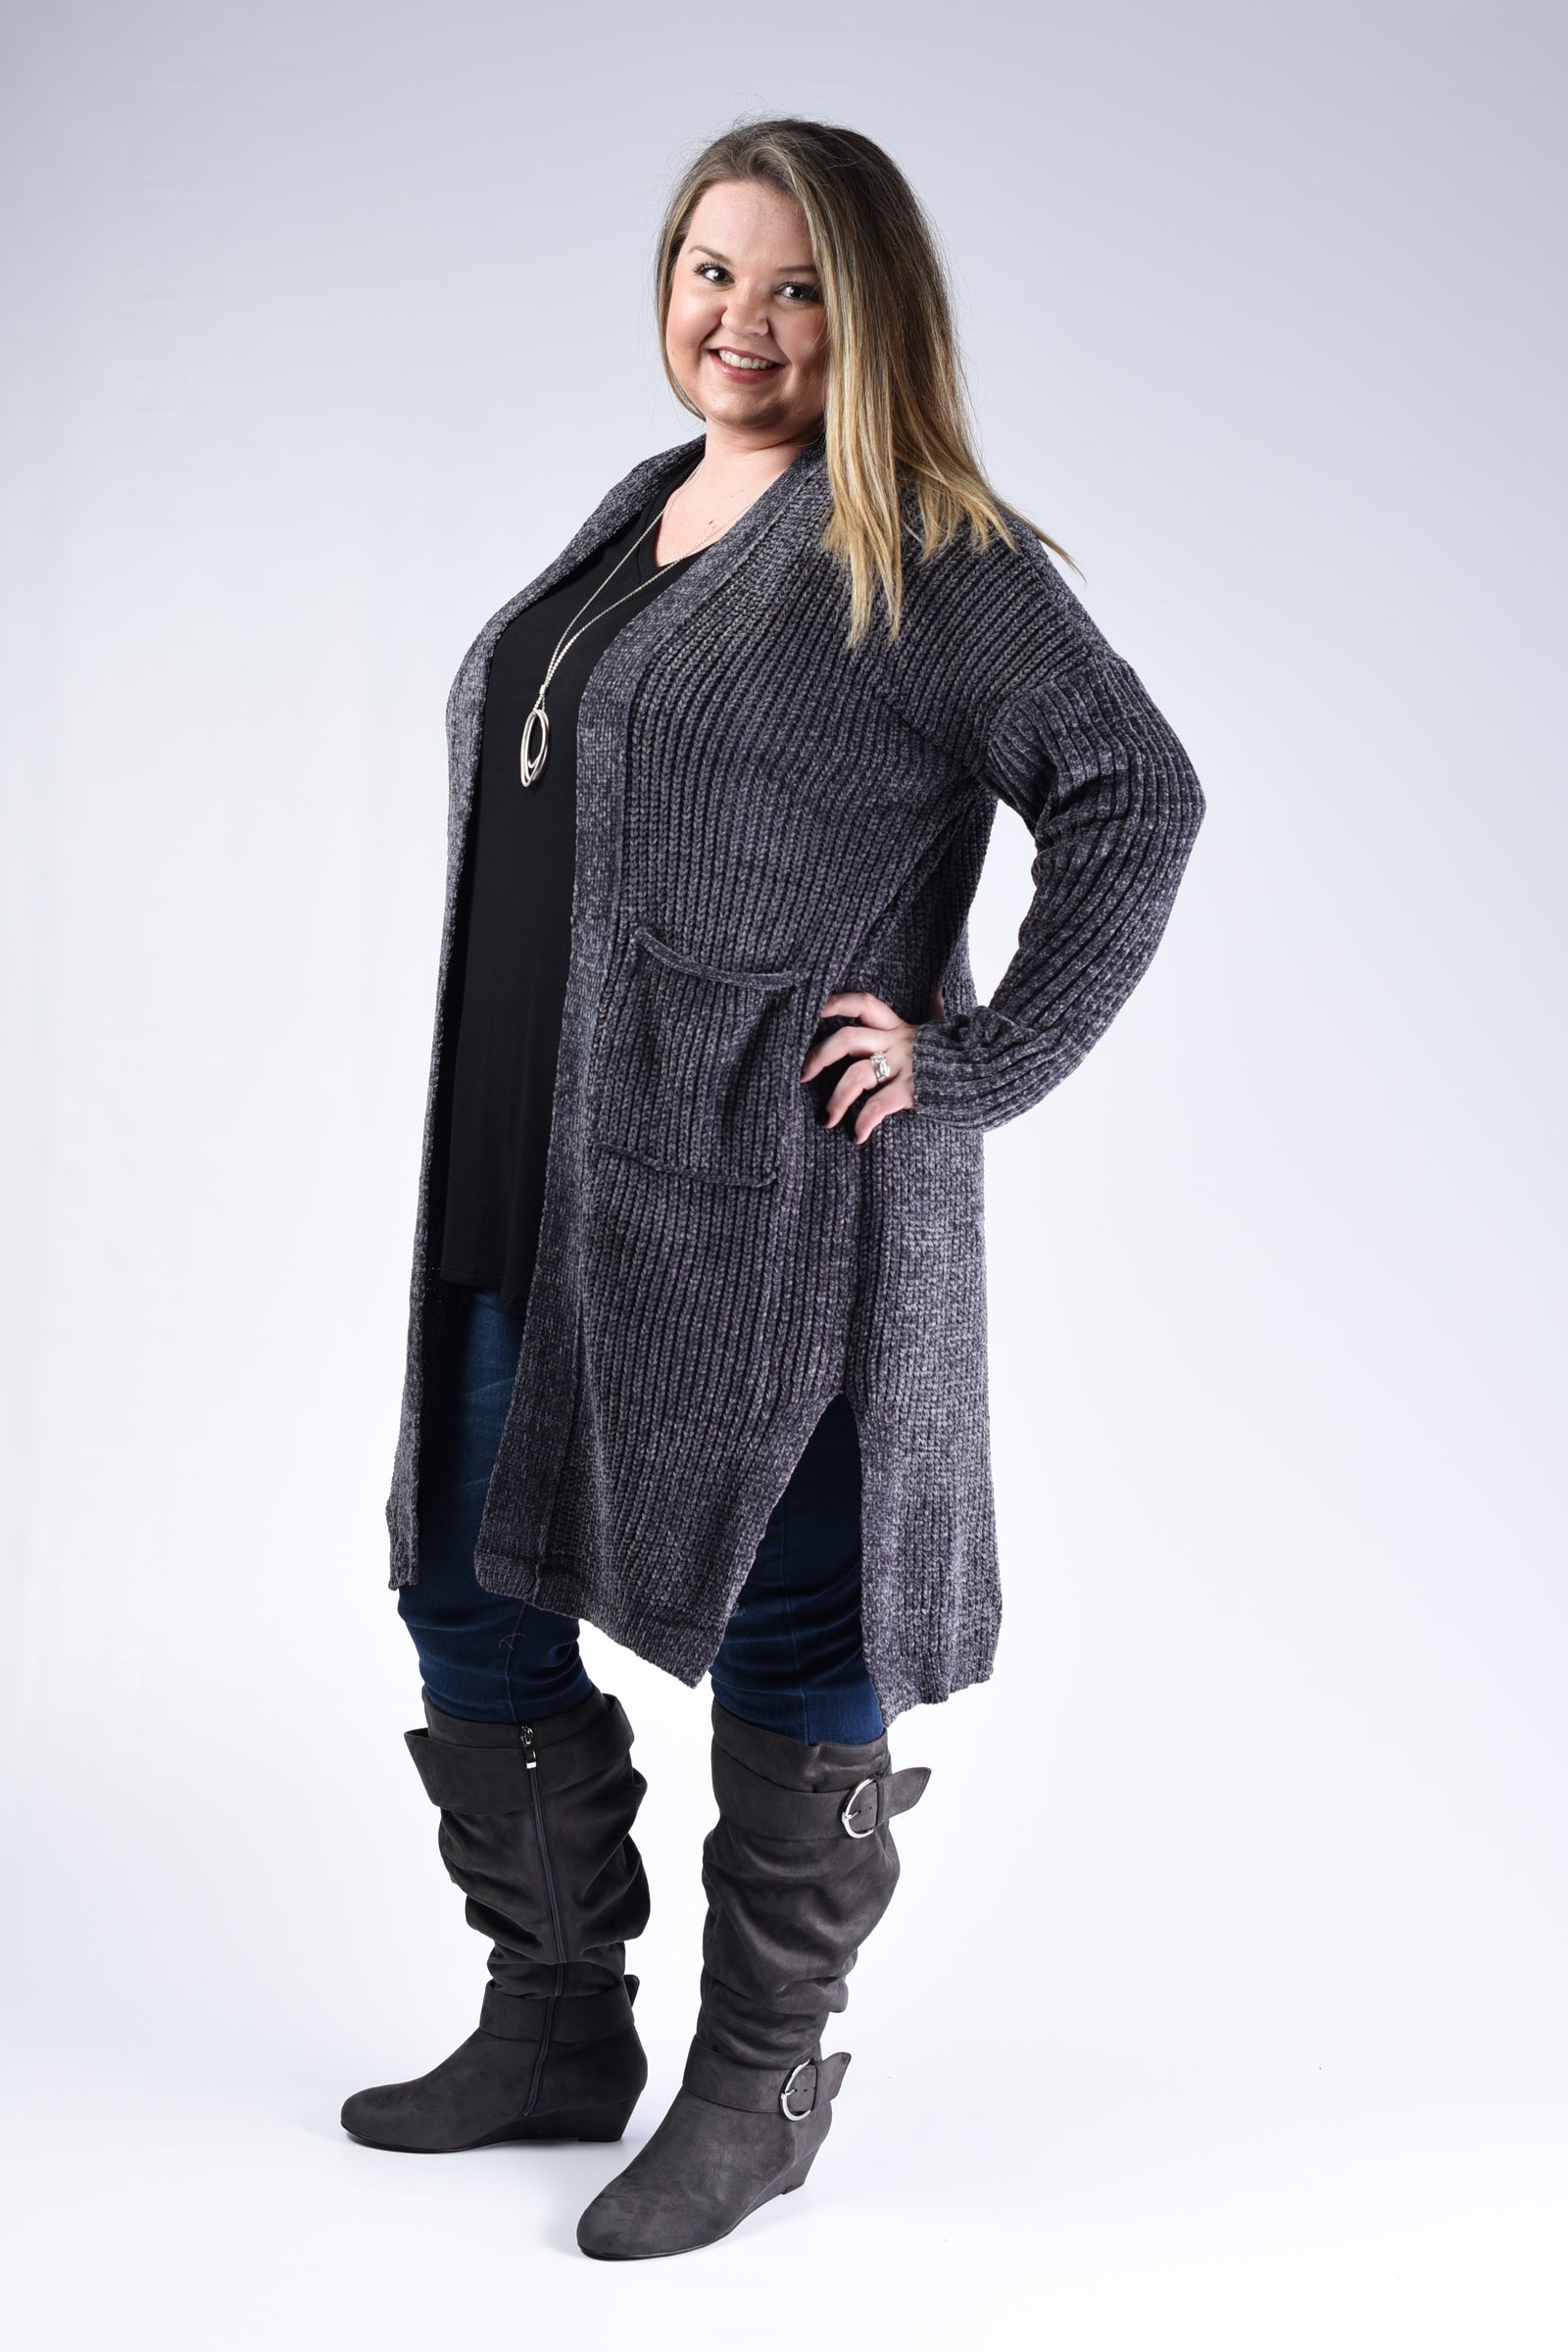 Charcoal Thick Knit Cardigan - www.mycurvystore.com - Curvy Boutique - Plus Size